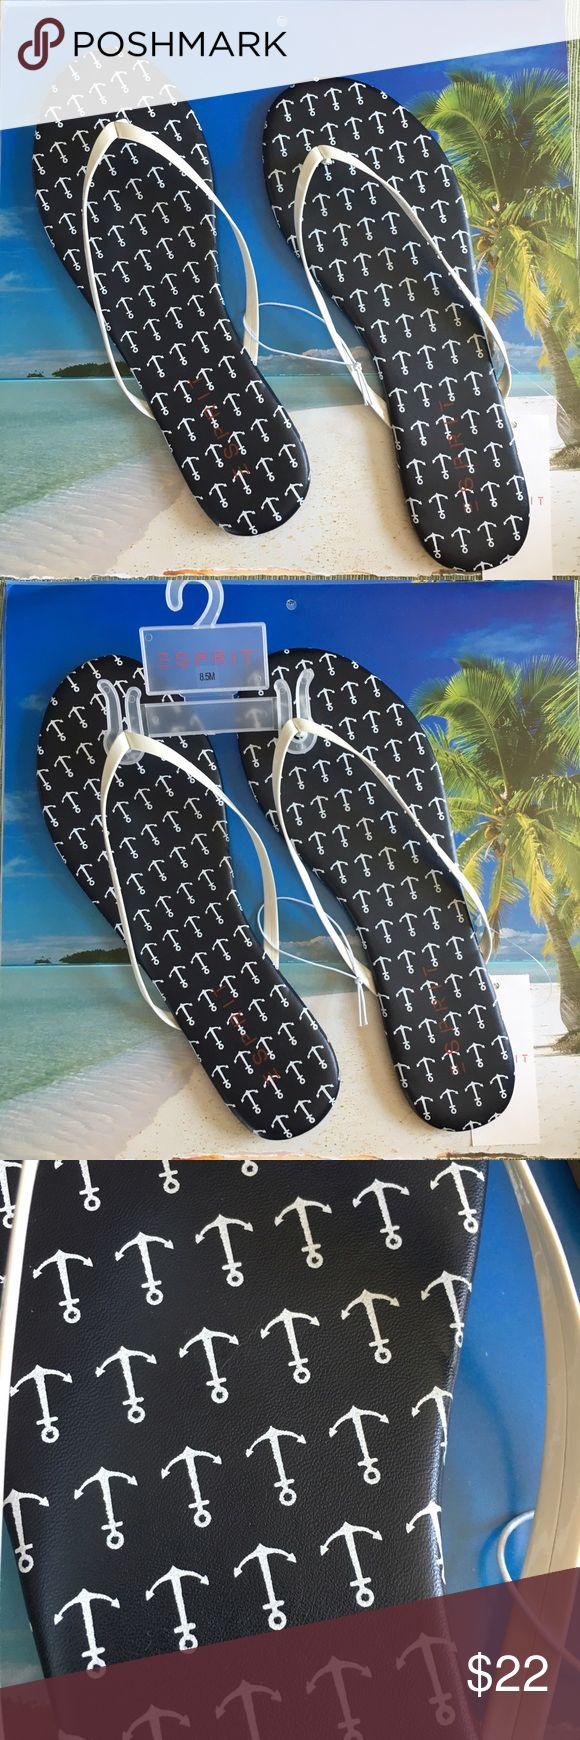 NWT Navy & White Nautical Anchor Flip Flops These are so cute, wish they were my size. I only have 2 sizes 8.5 & 8 in Women's. Navy blue with white anchors and white straps. NWT. Some padding on footbed. Just in time for the warmer weather. Select your size. espirit Shoes Sandals